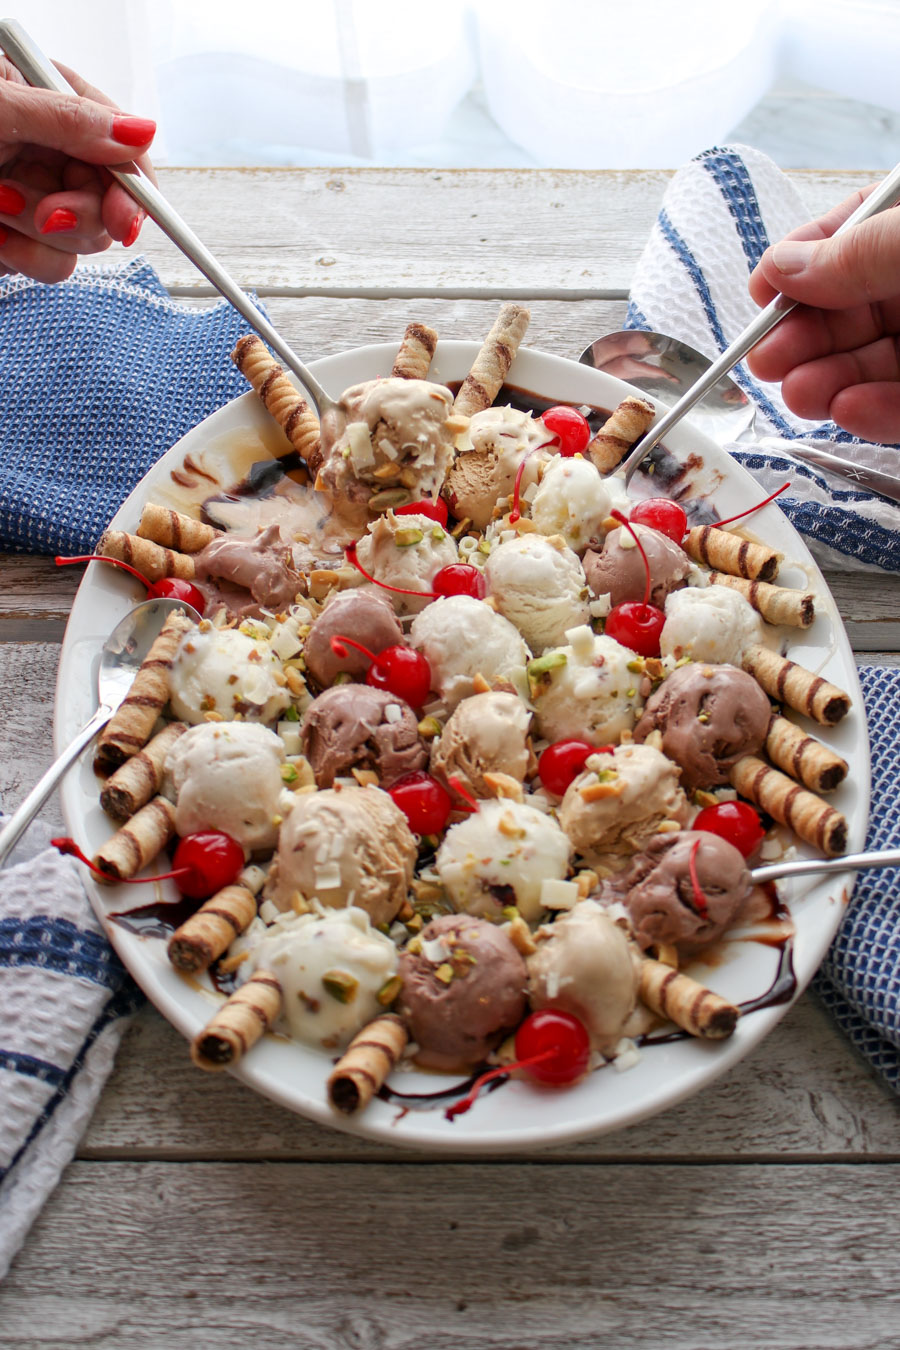 Ice Cream Party Platter with two hands holding spoons